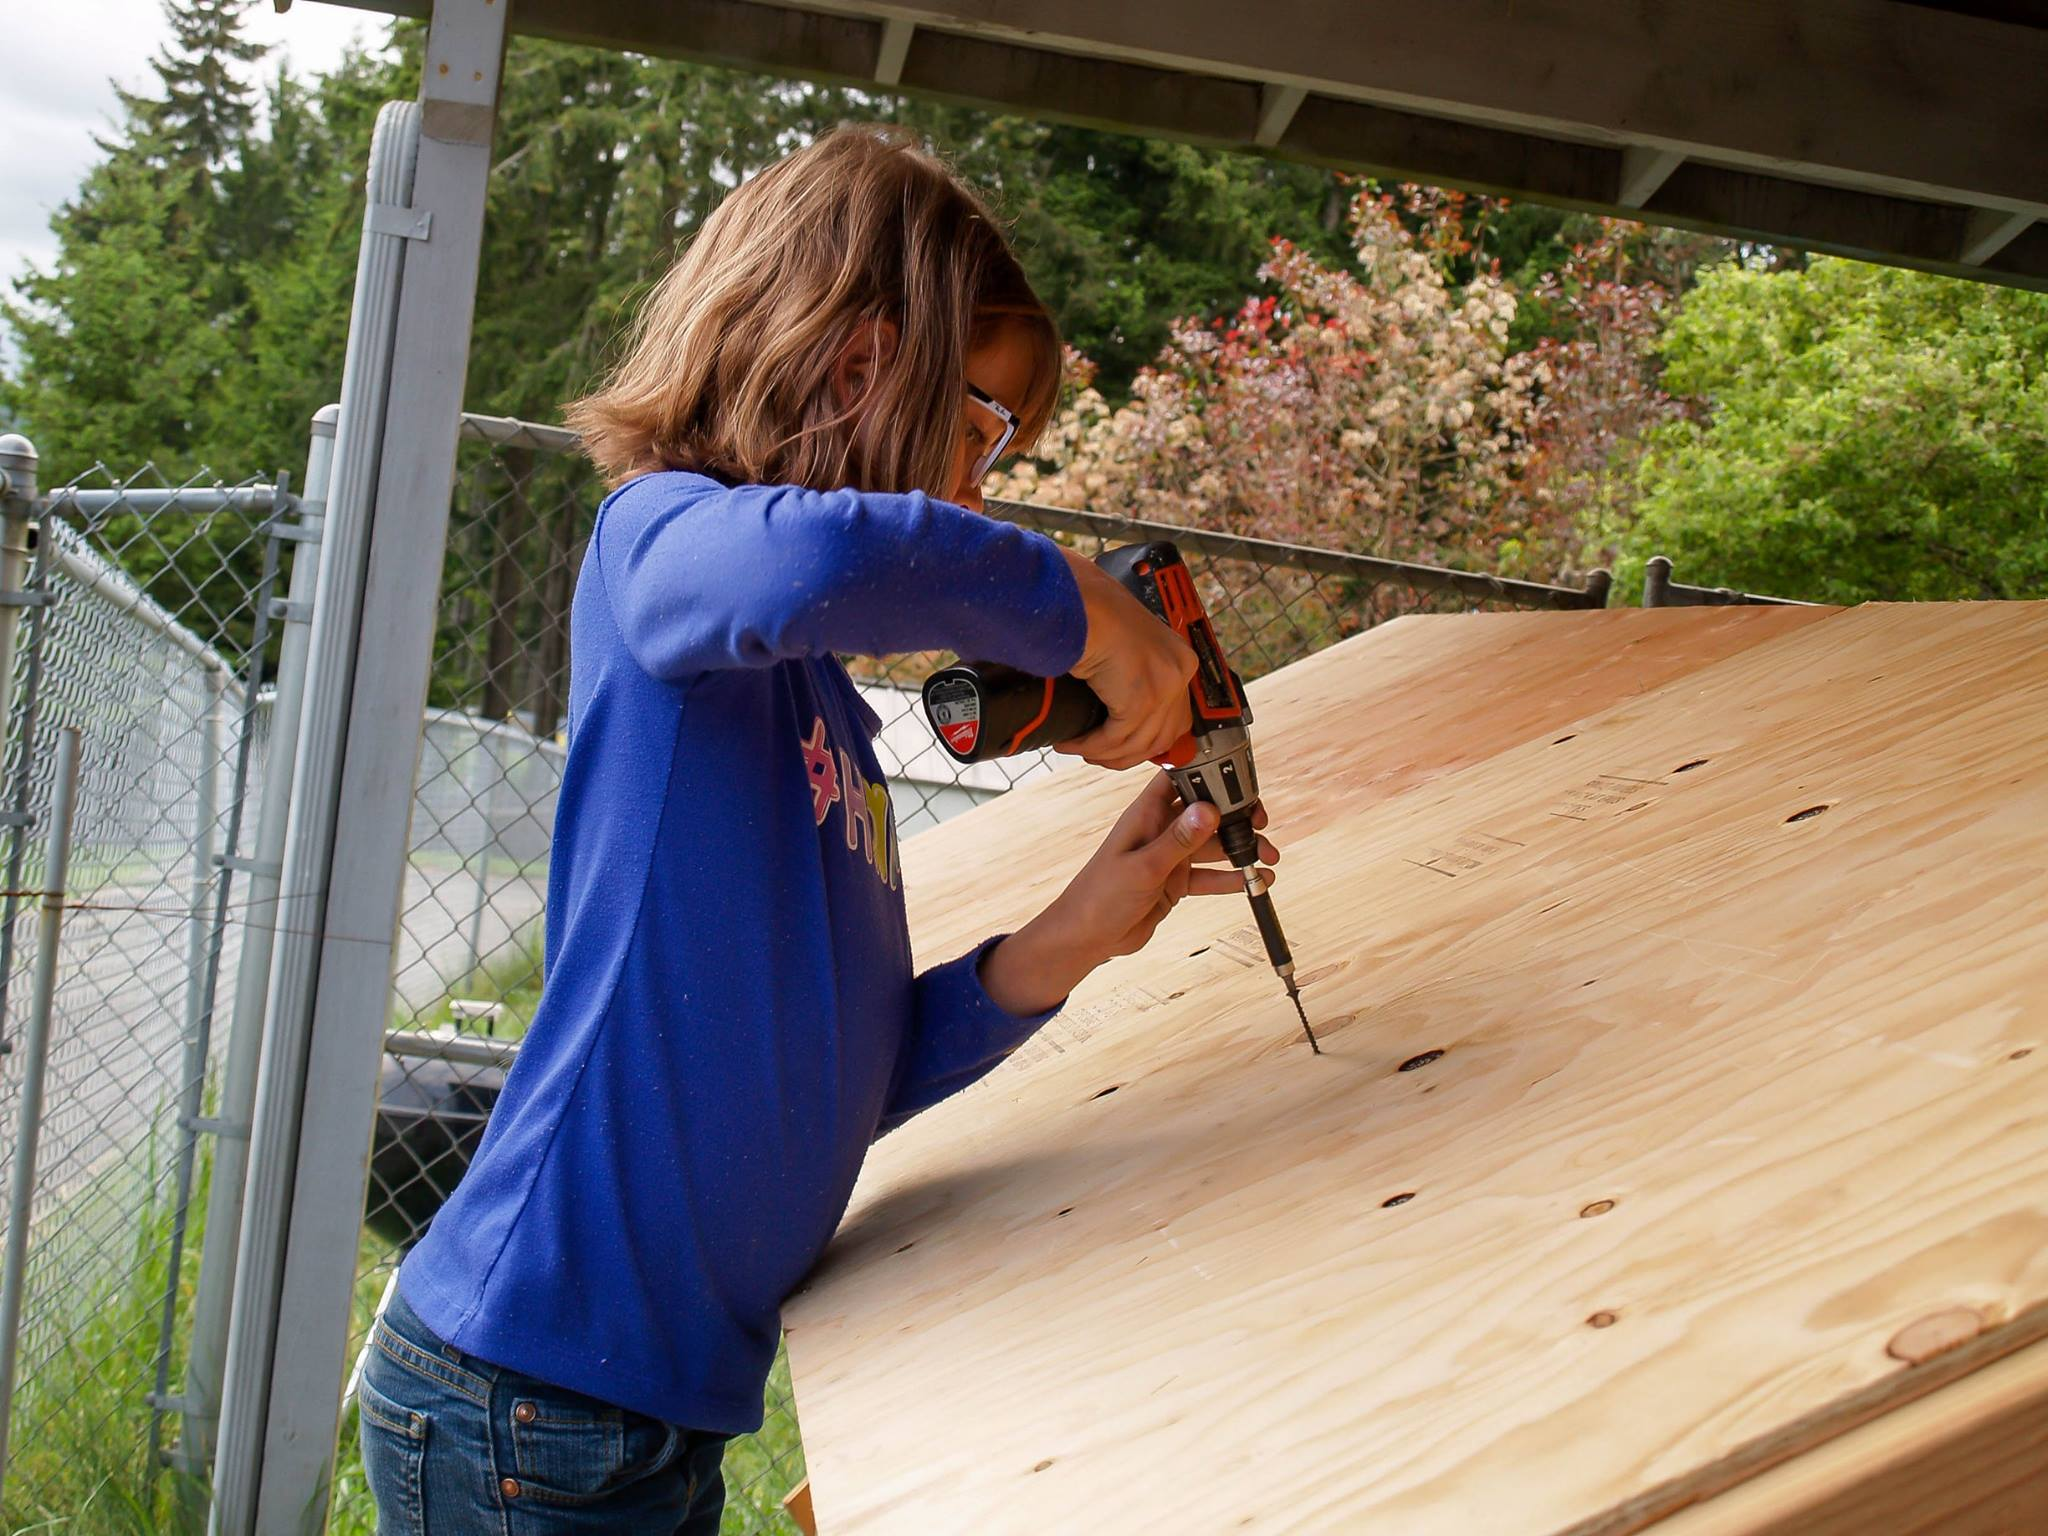 Meet the 9-year-old girl who builds shelters for the homeless